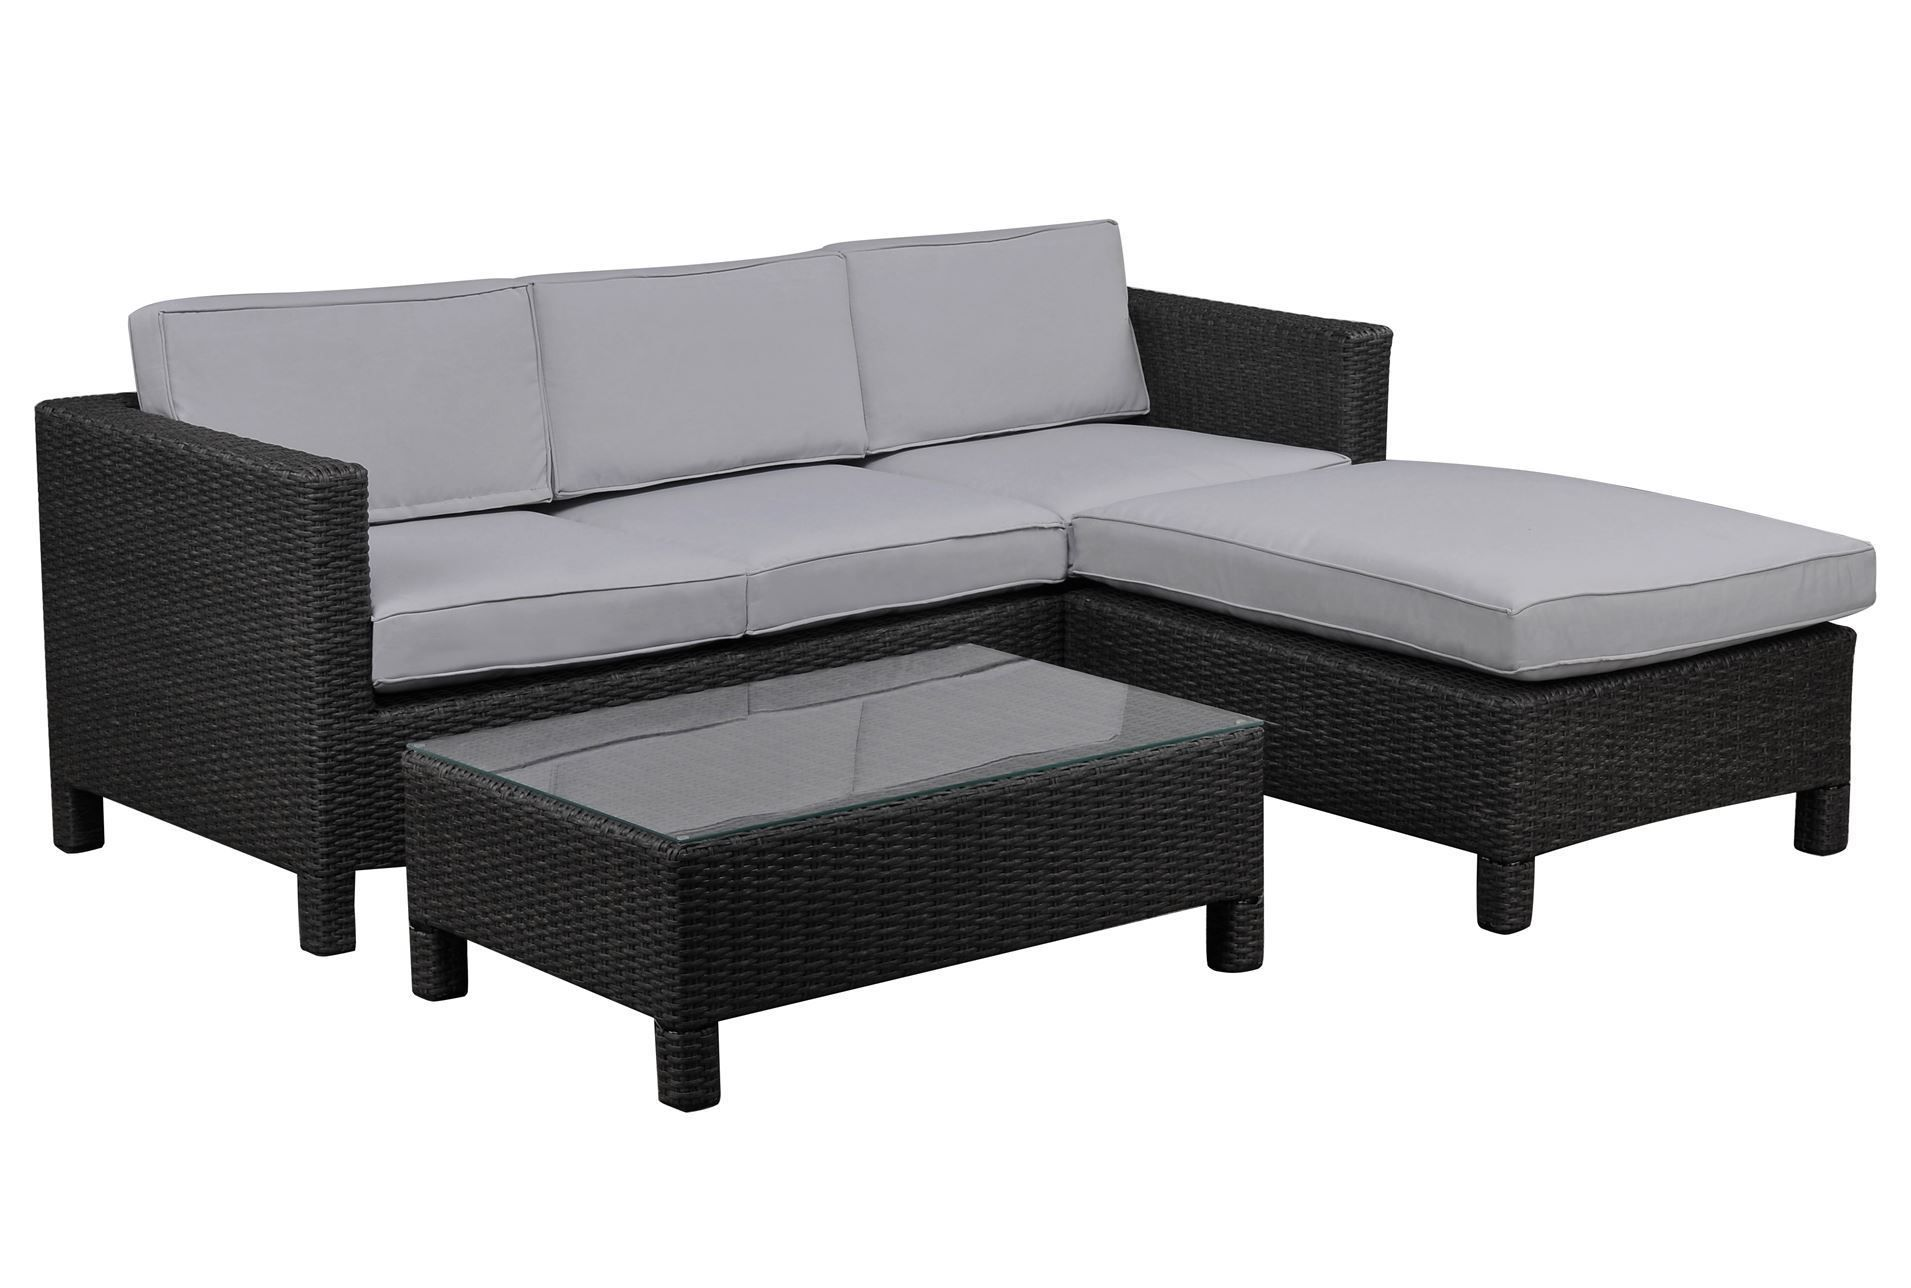 Montego Sofa | Montego Sofa W Reversible Chaise At Living Spaces 600 Yard